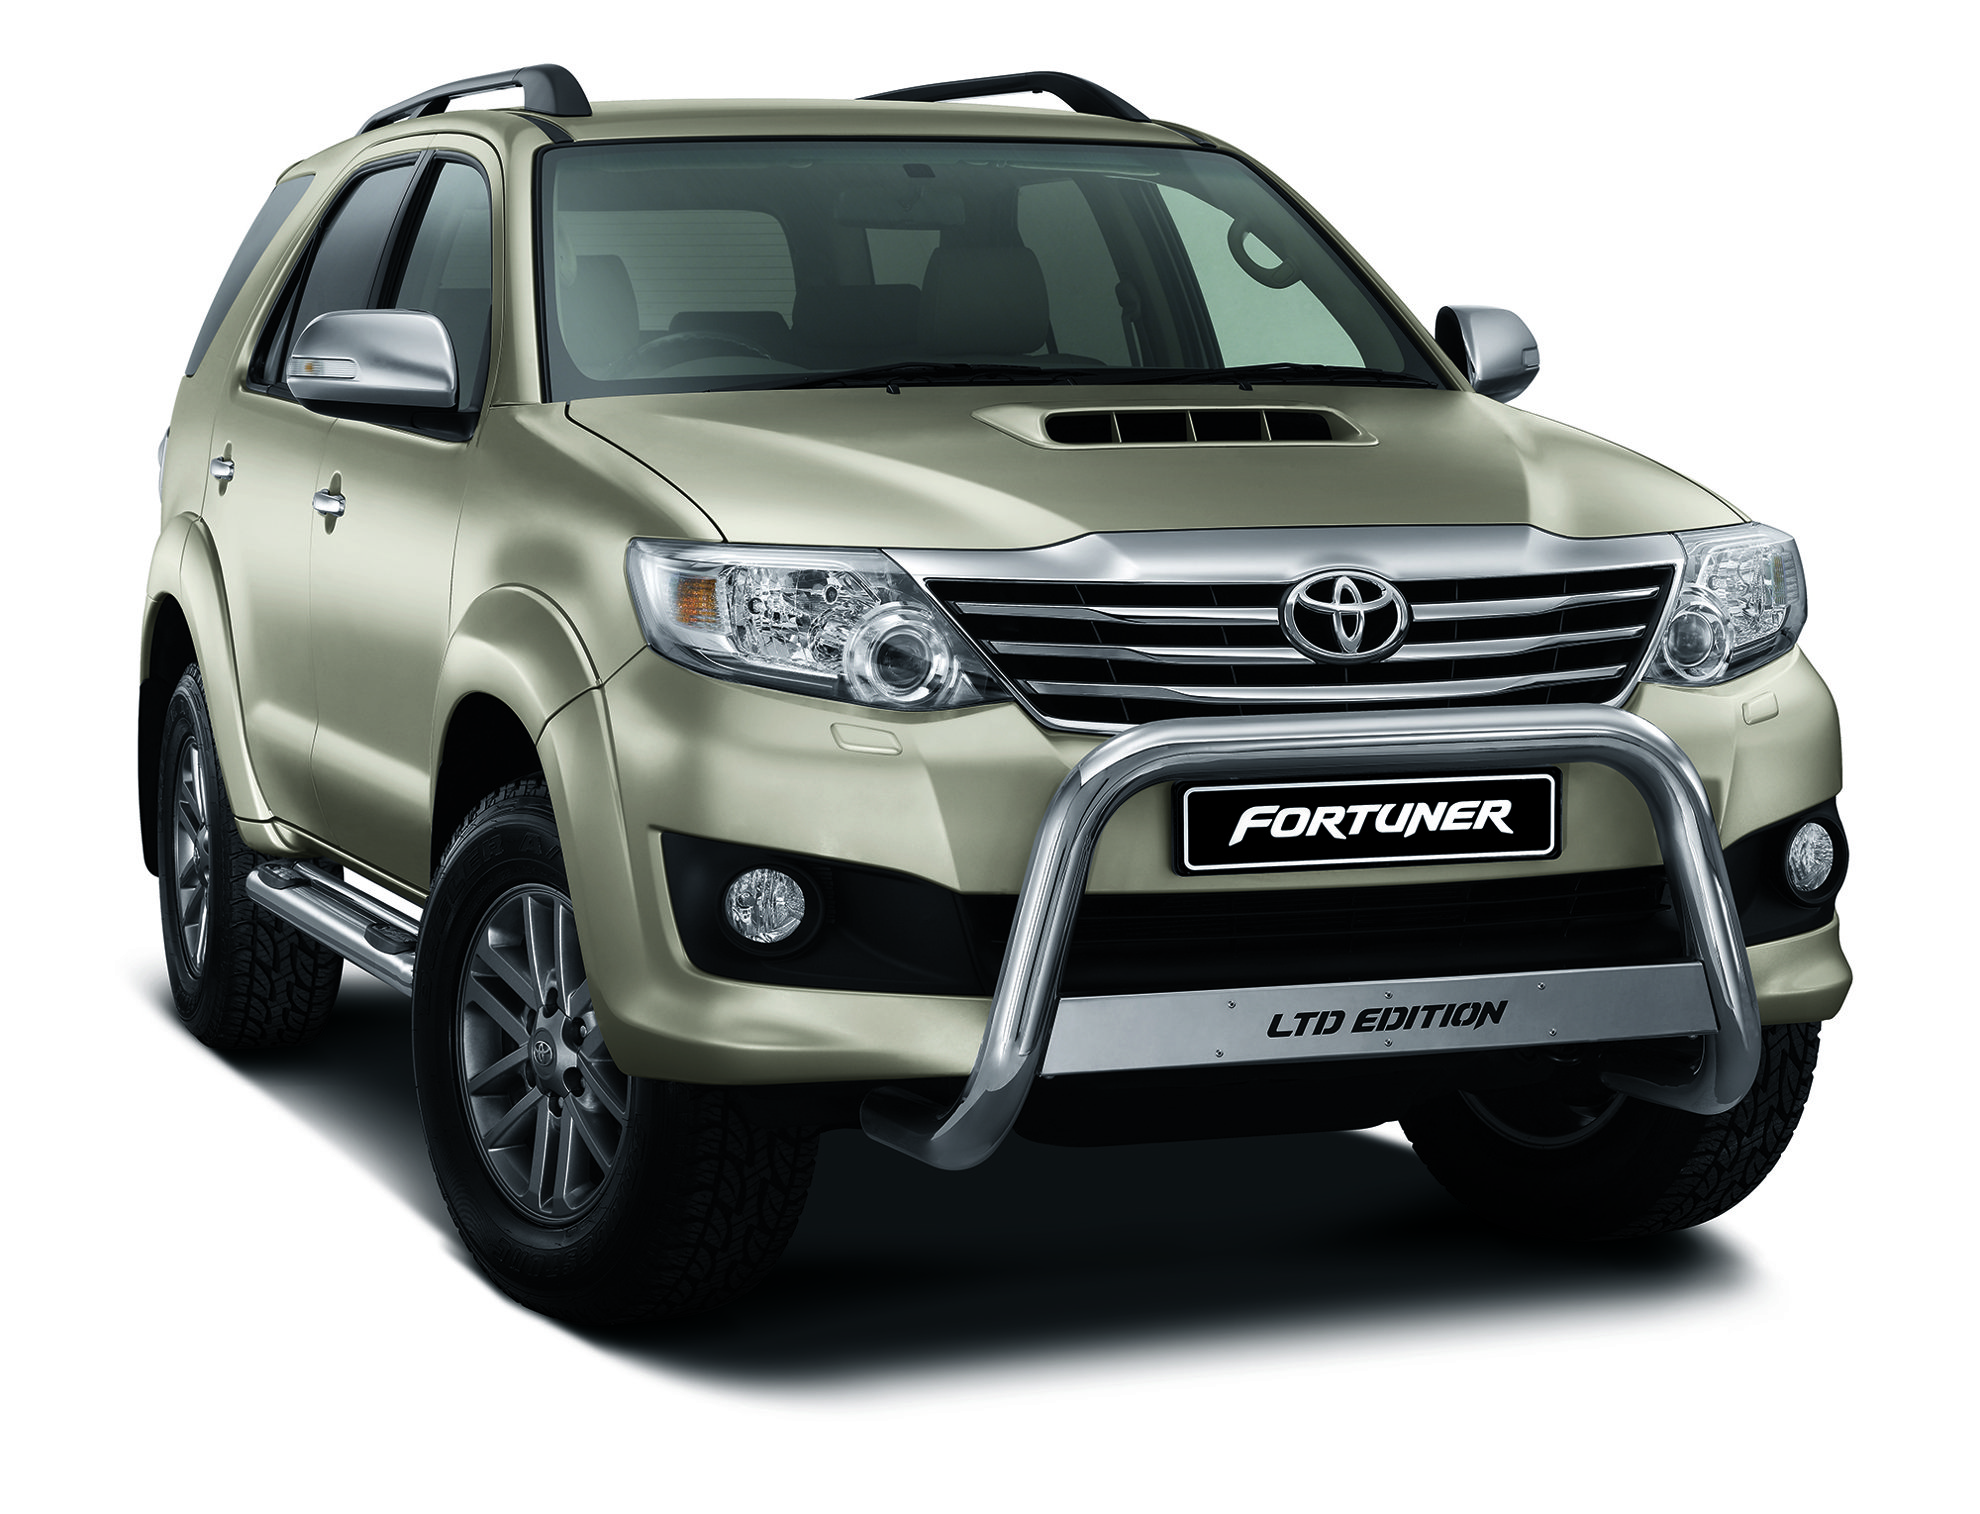 Toyota Fortuner LTD Edition